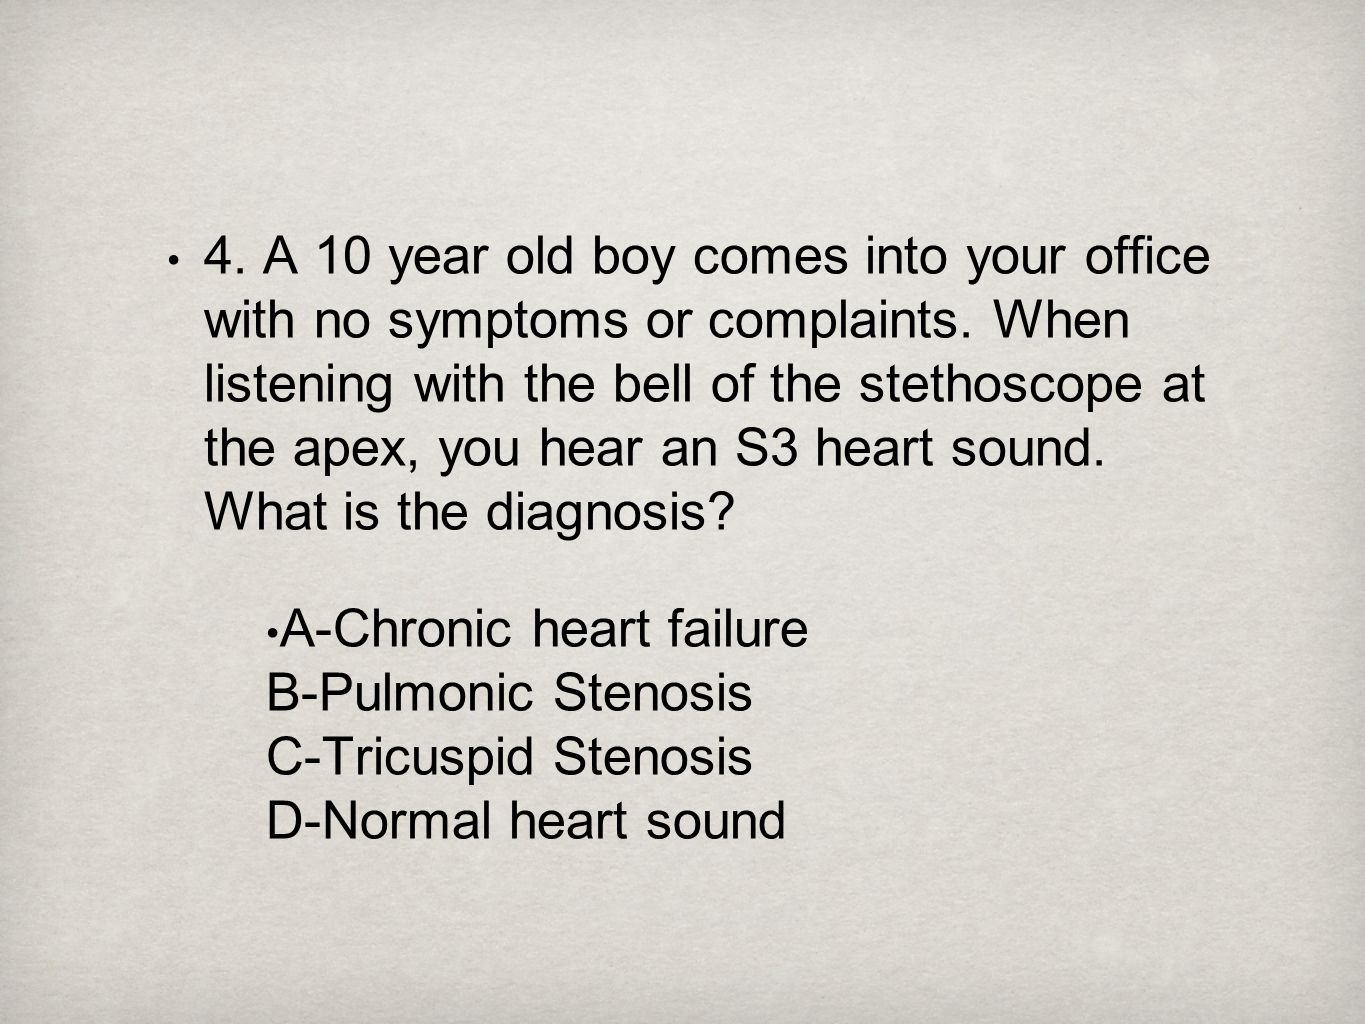 4. A 10 year old boy comes into your office with no symptoms or complaints. When listening with the bell of the stethoscope at the apex, you hear an S3 heart sound. What is the diagnosis